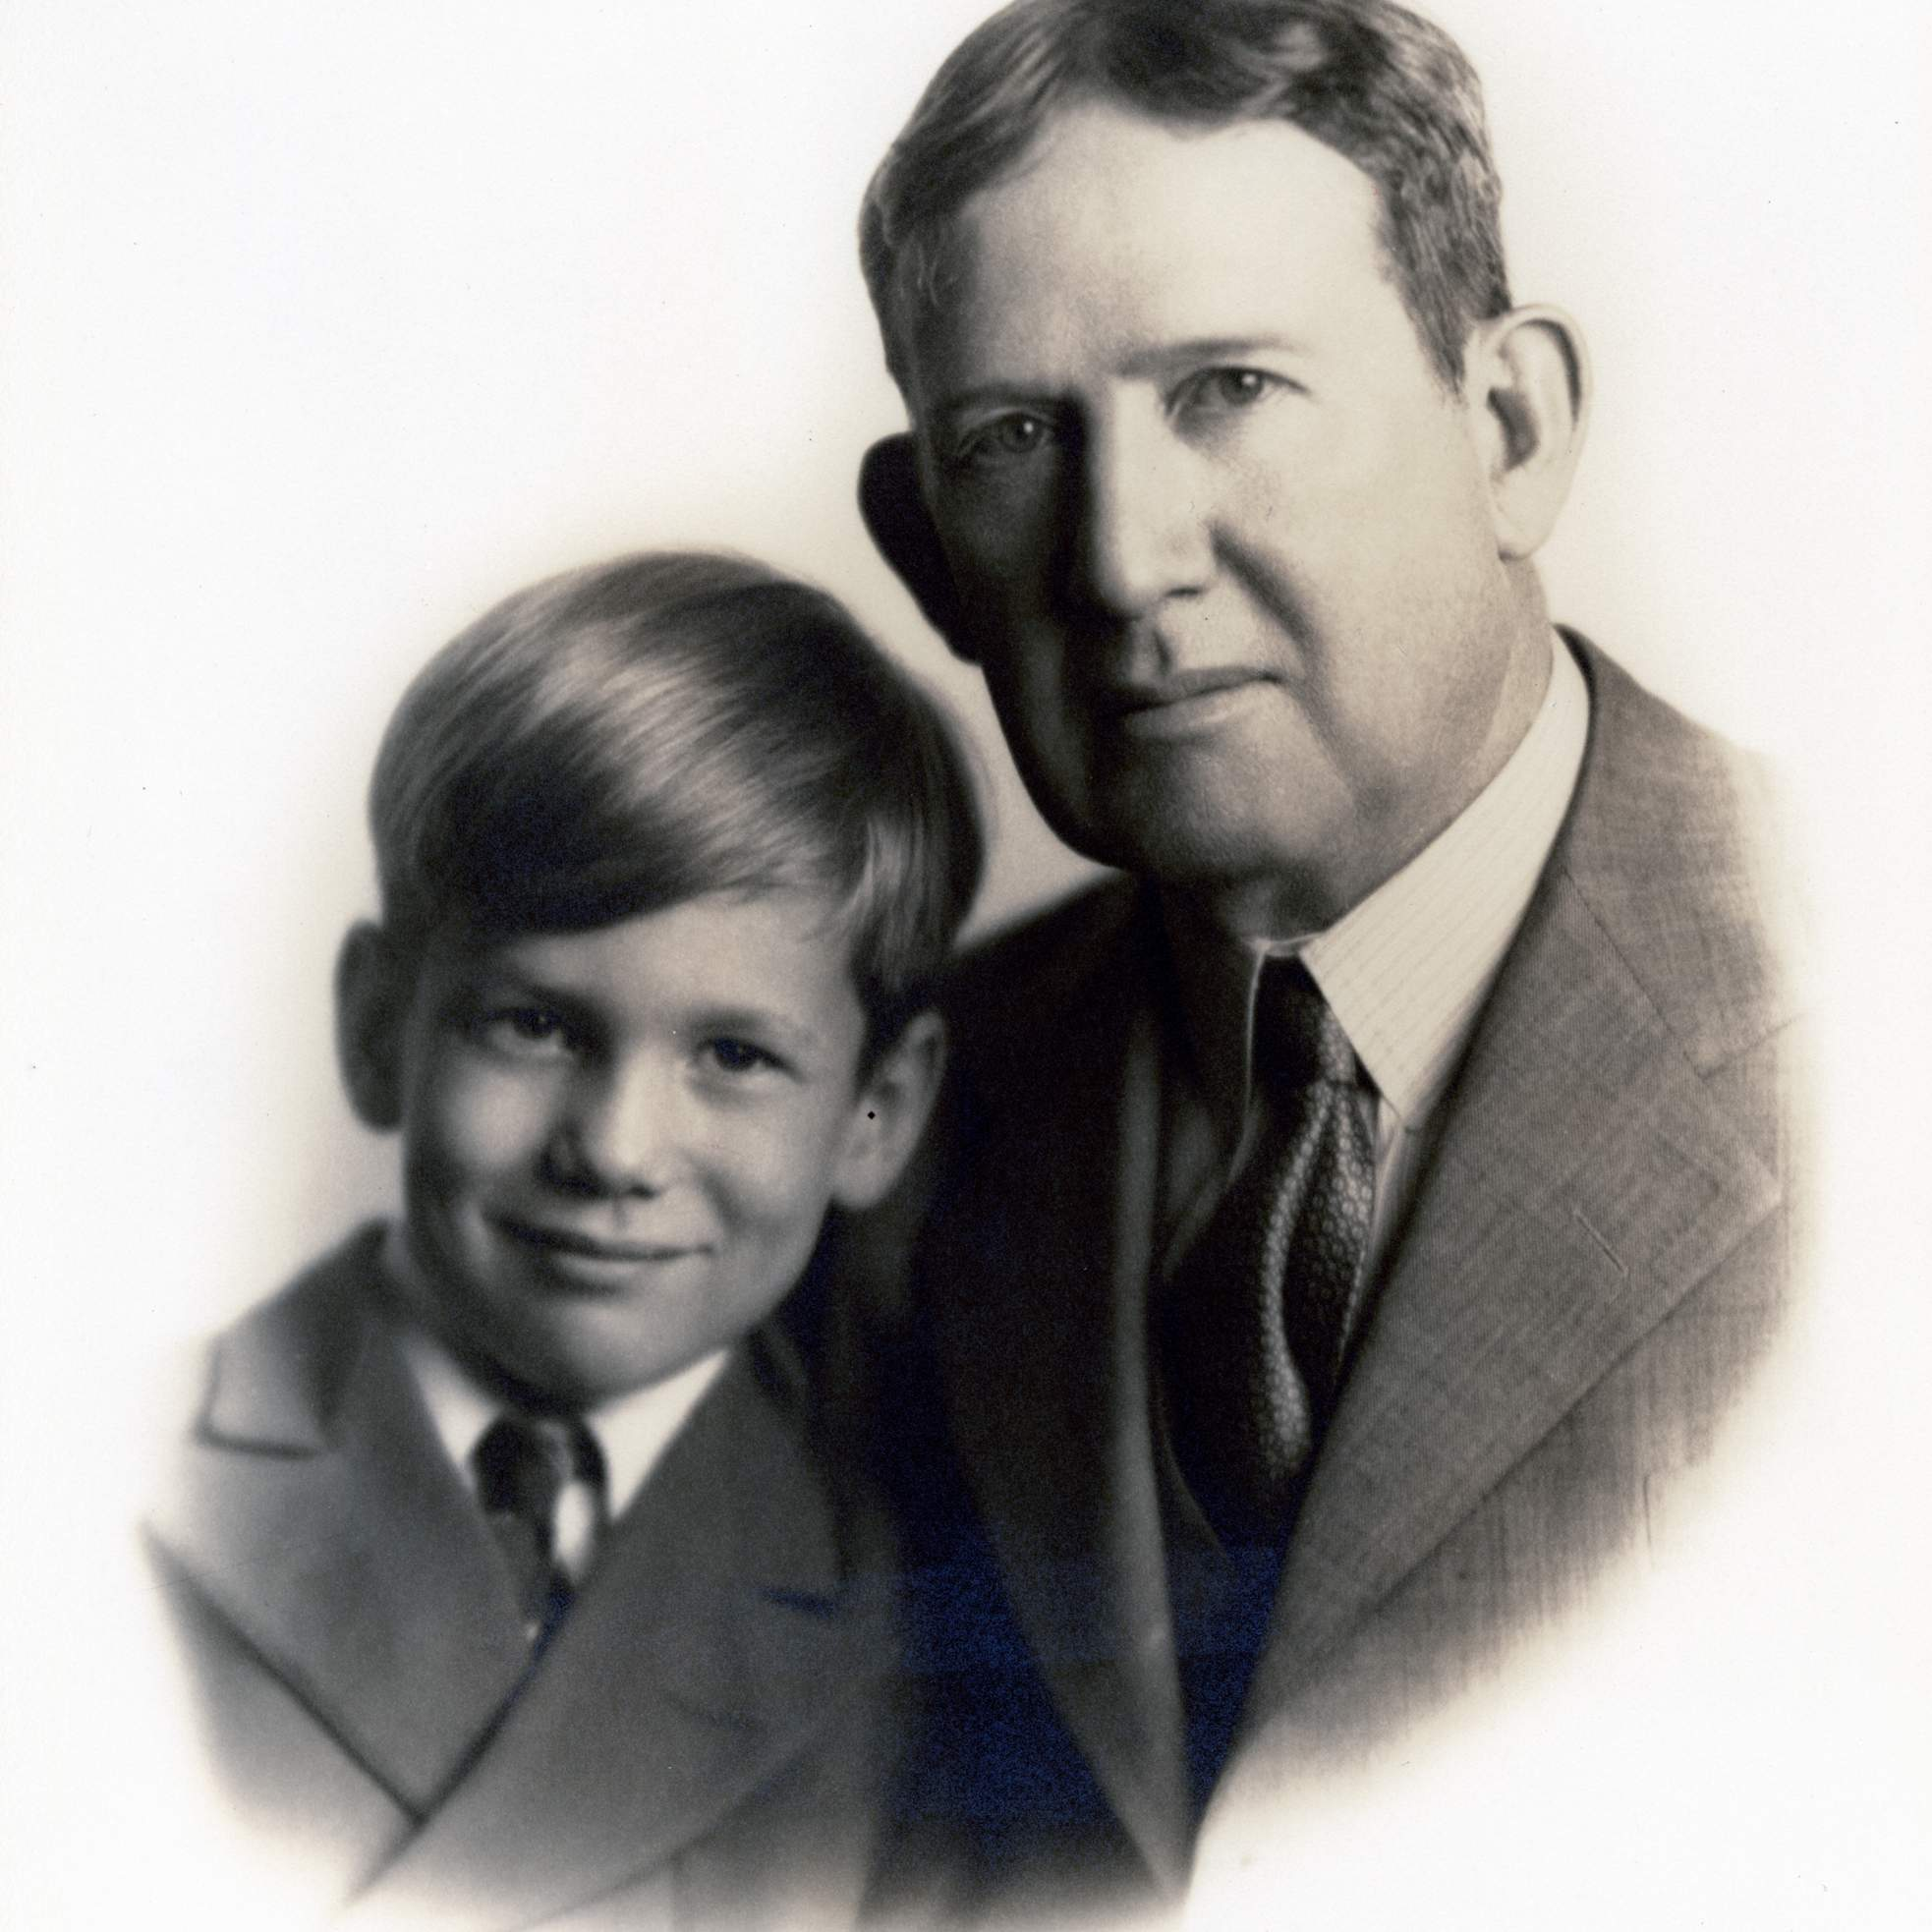 Bill Hobby with his father, Will Hobby